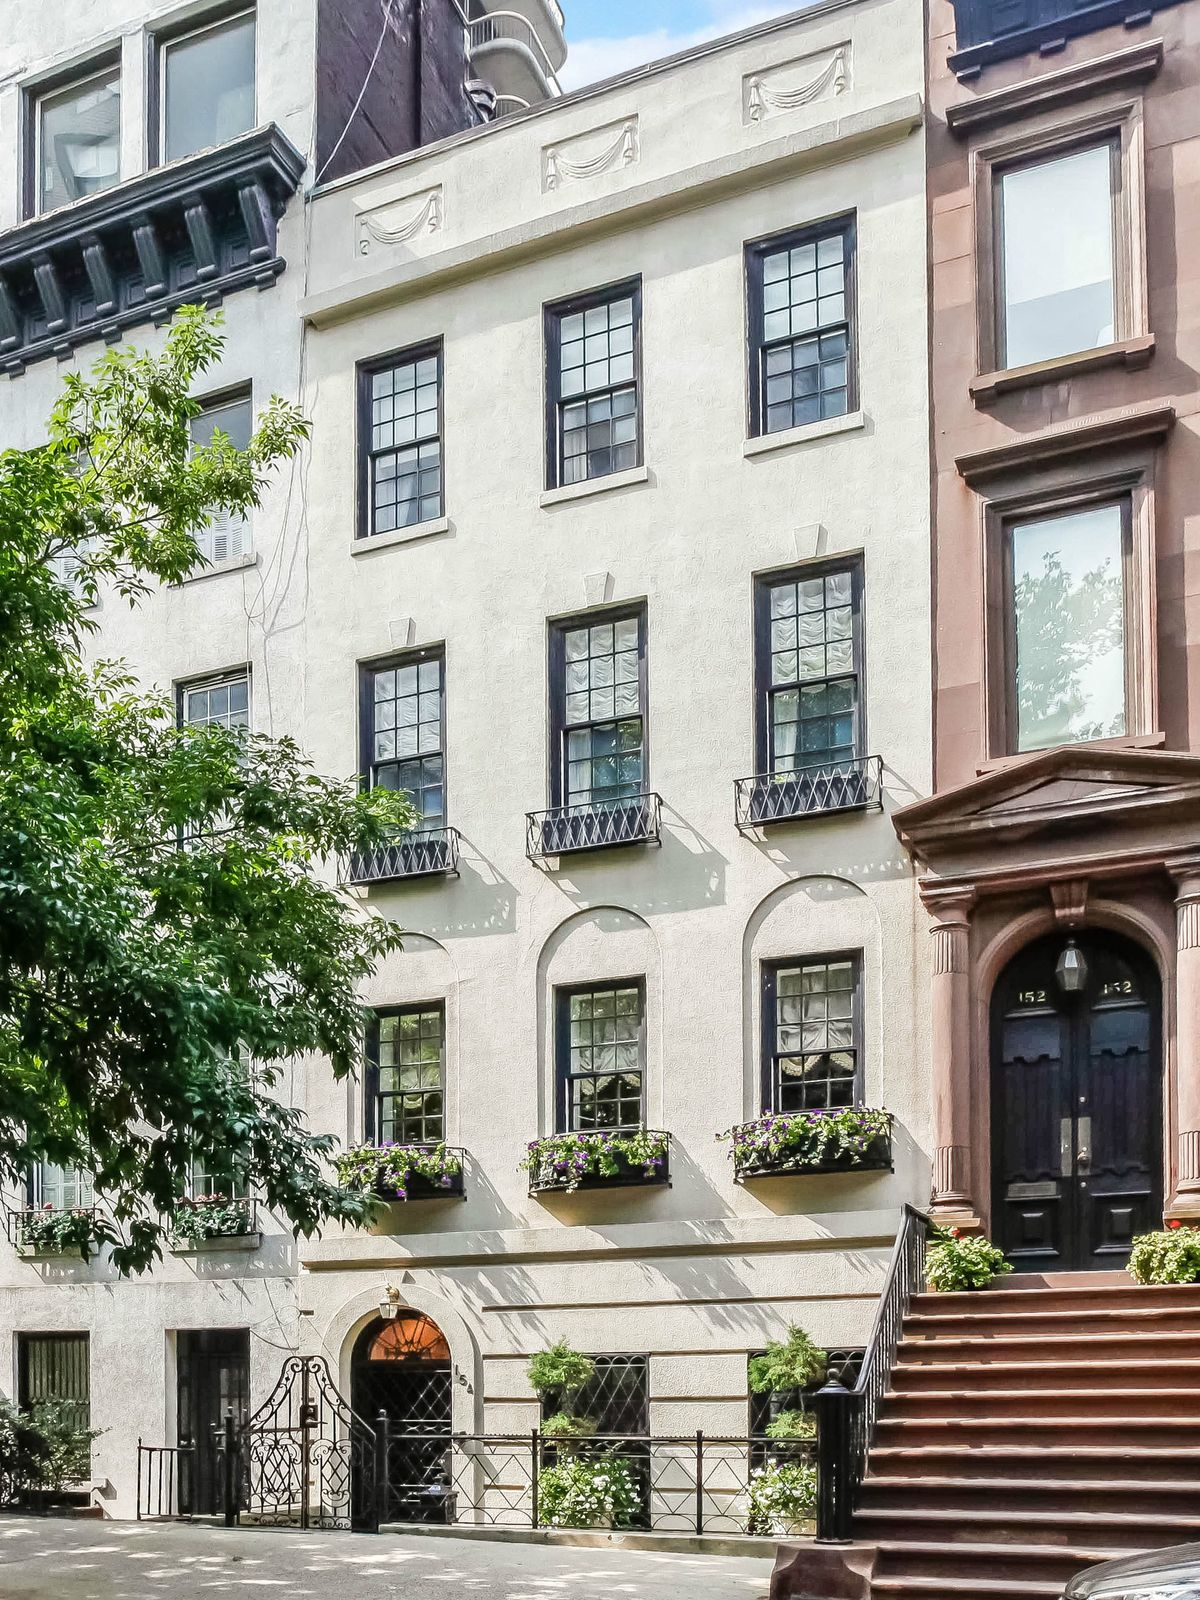 Gracious Townhouse, New York NY Townhouse - New York City Real Estate